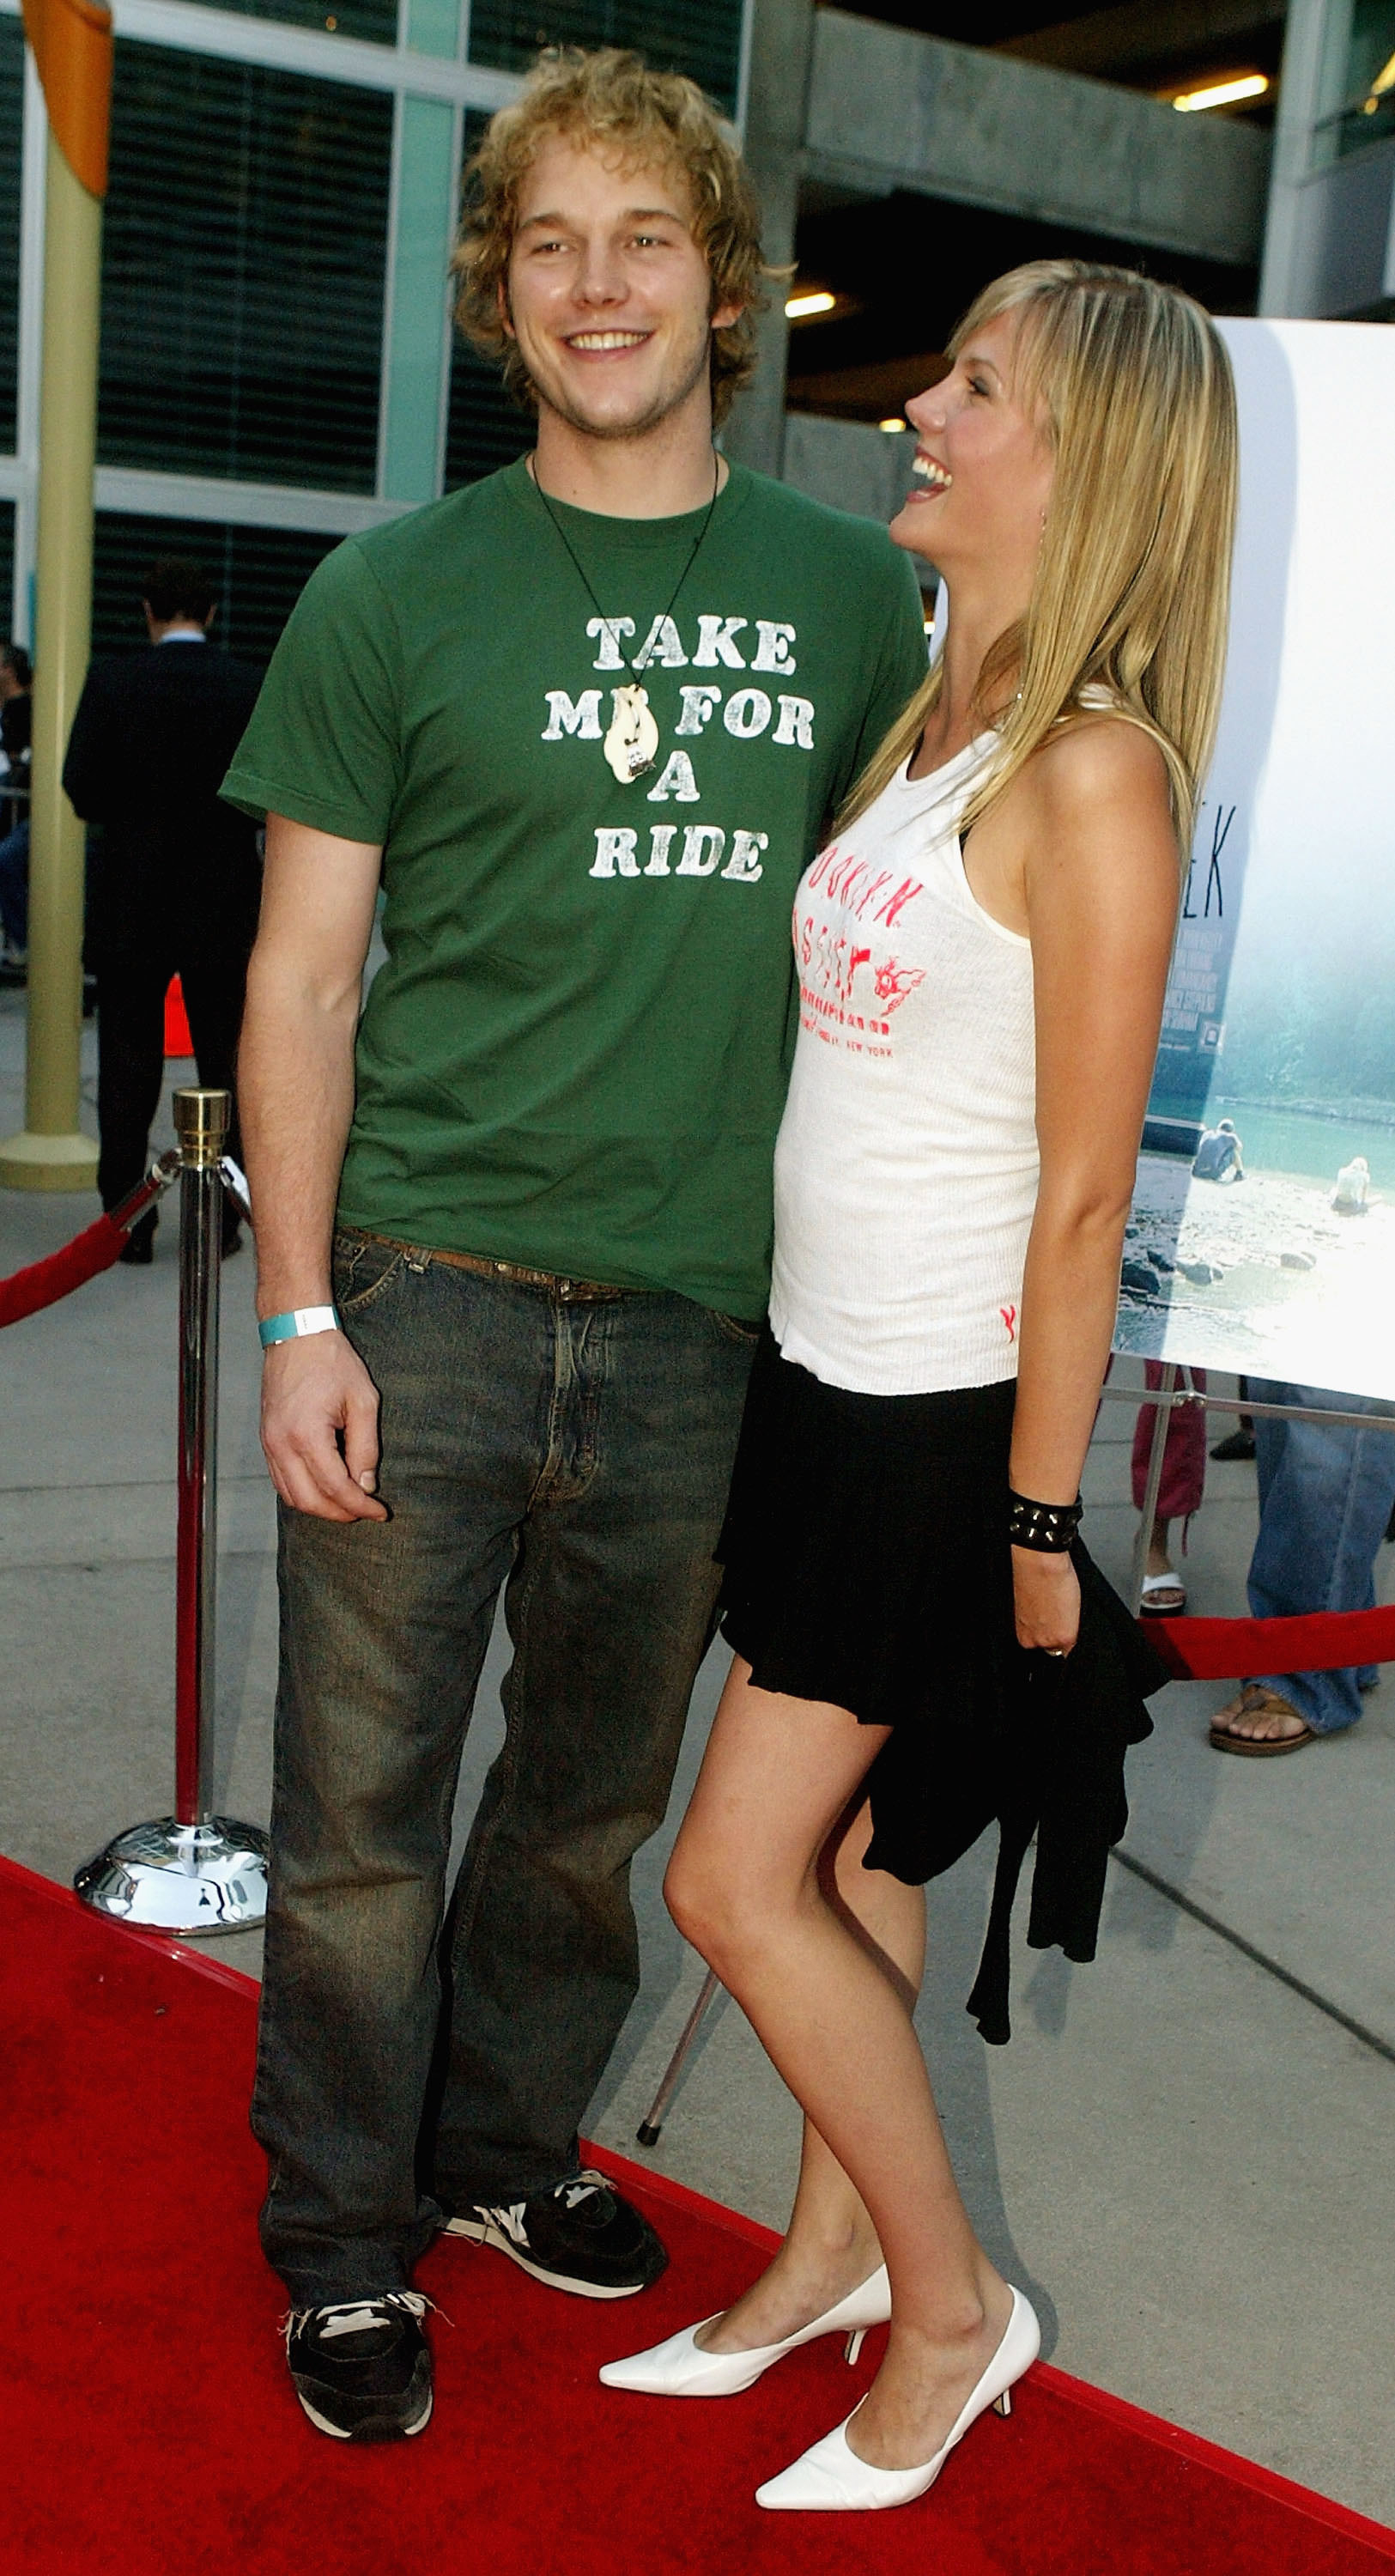 """A photo of Chris Pratt wearing a green T-shirt with """"Take Me For A Ride"""" written on it."""